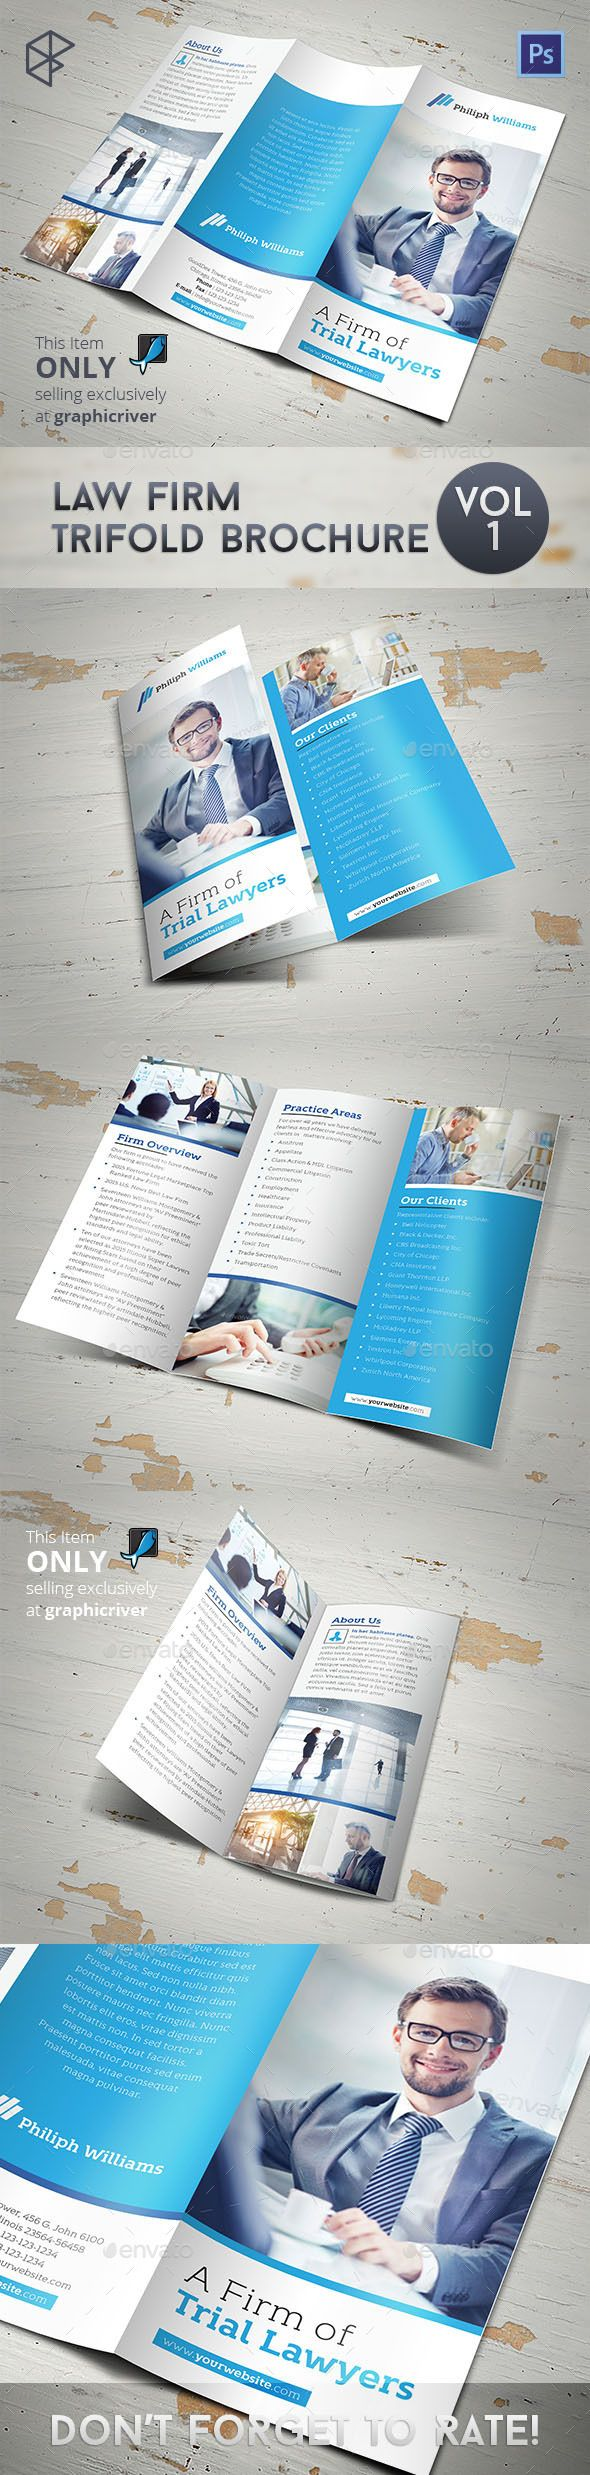 Law firm trifold brochure brochure template brochures for Law firm brochure template